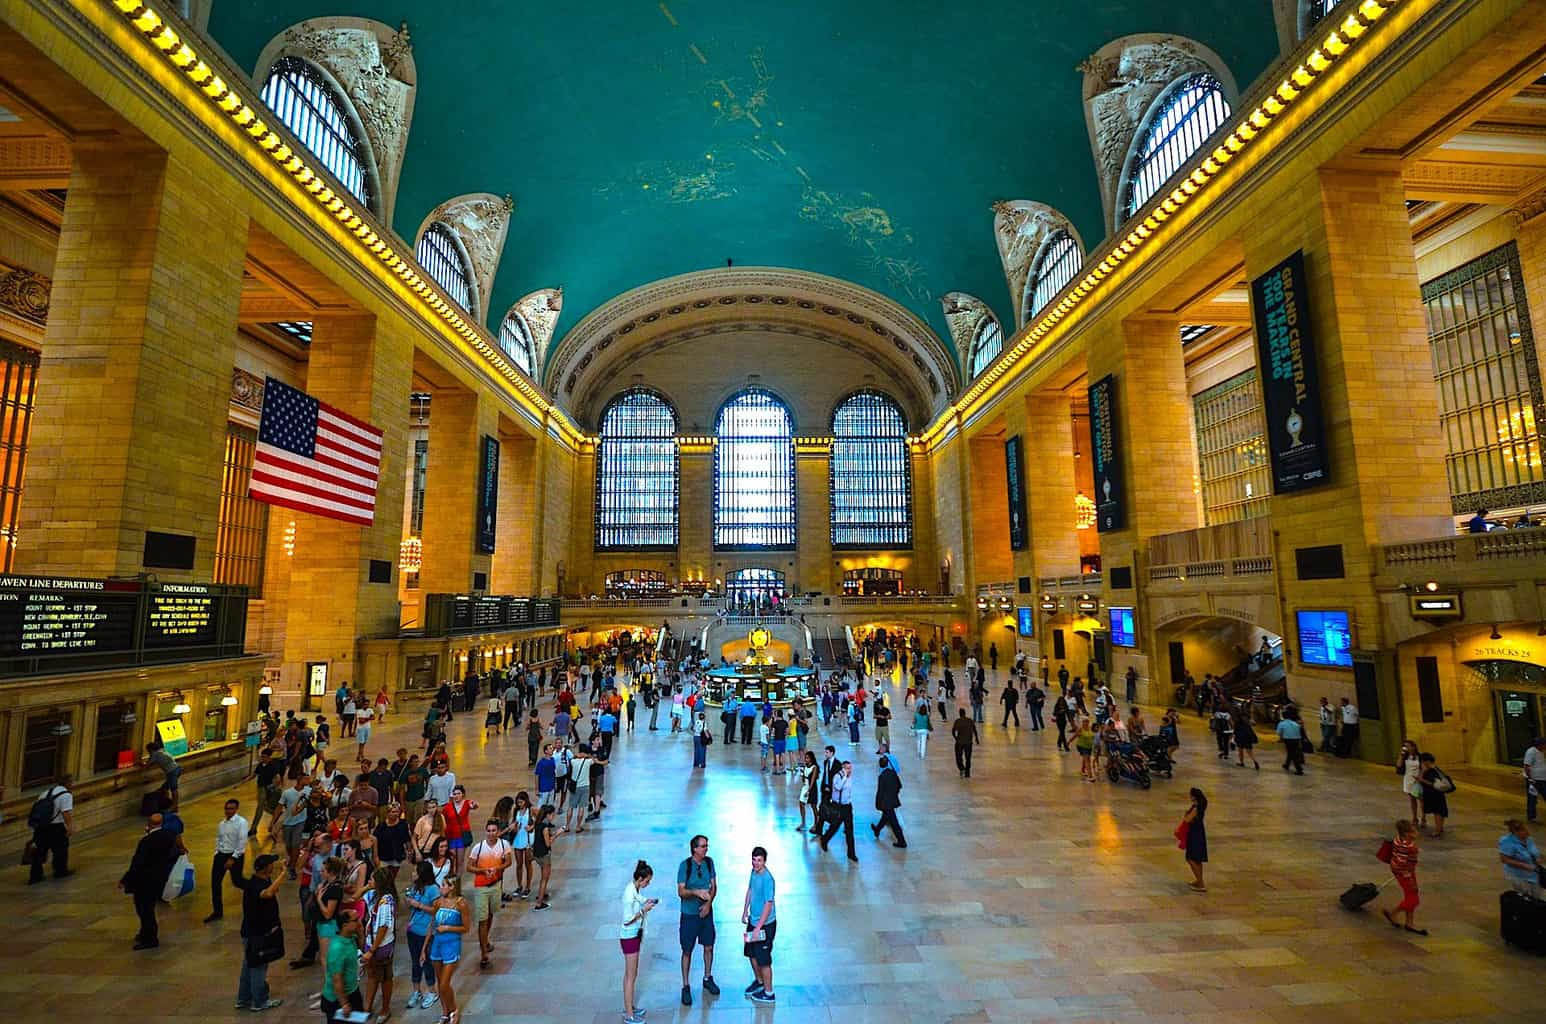 The expansive interior of Grand Central terminal with its central clock and constellation embued ceiling.